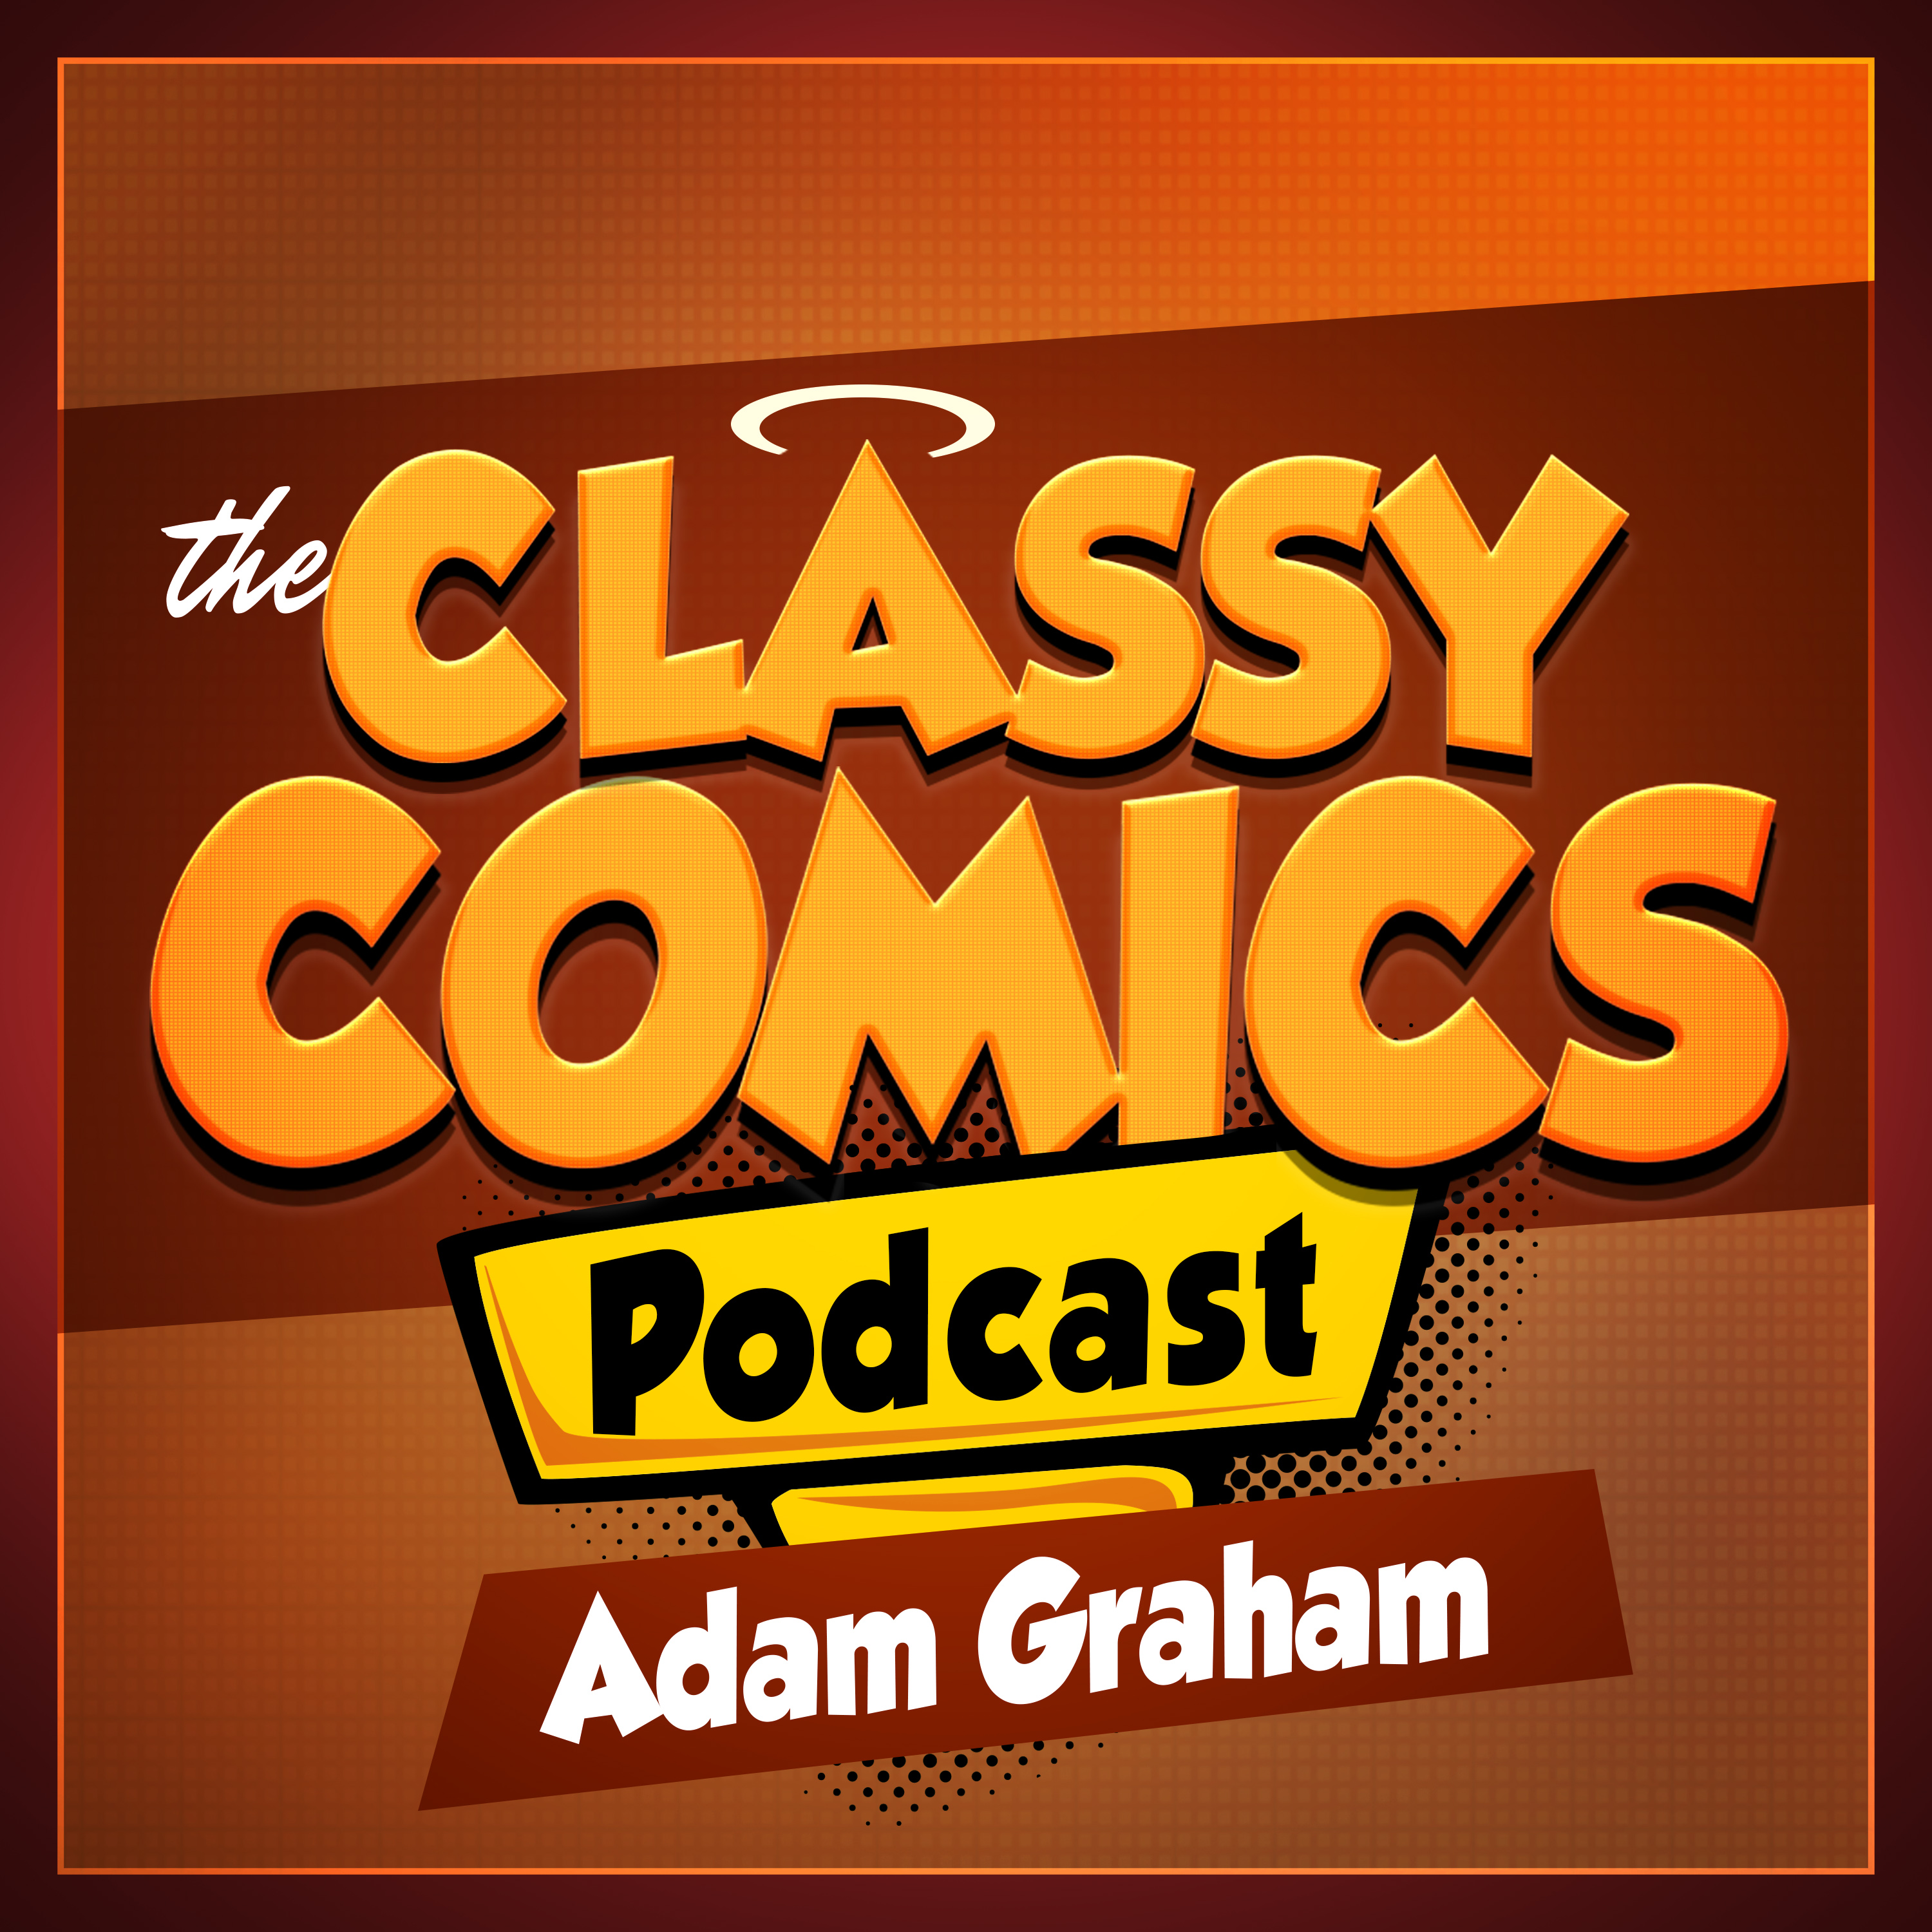 Podcast – The Classy ics Podcast by Adam Graham on Apple Podcasts